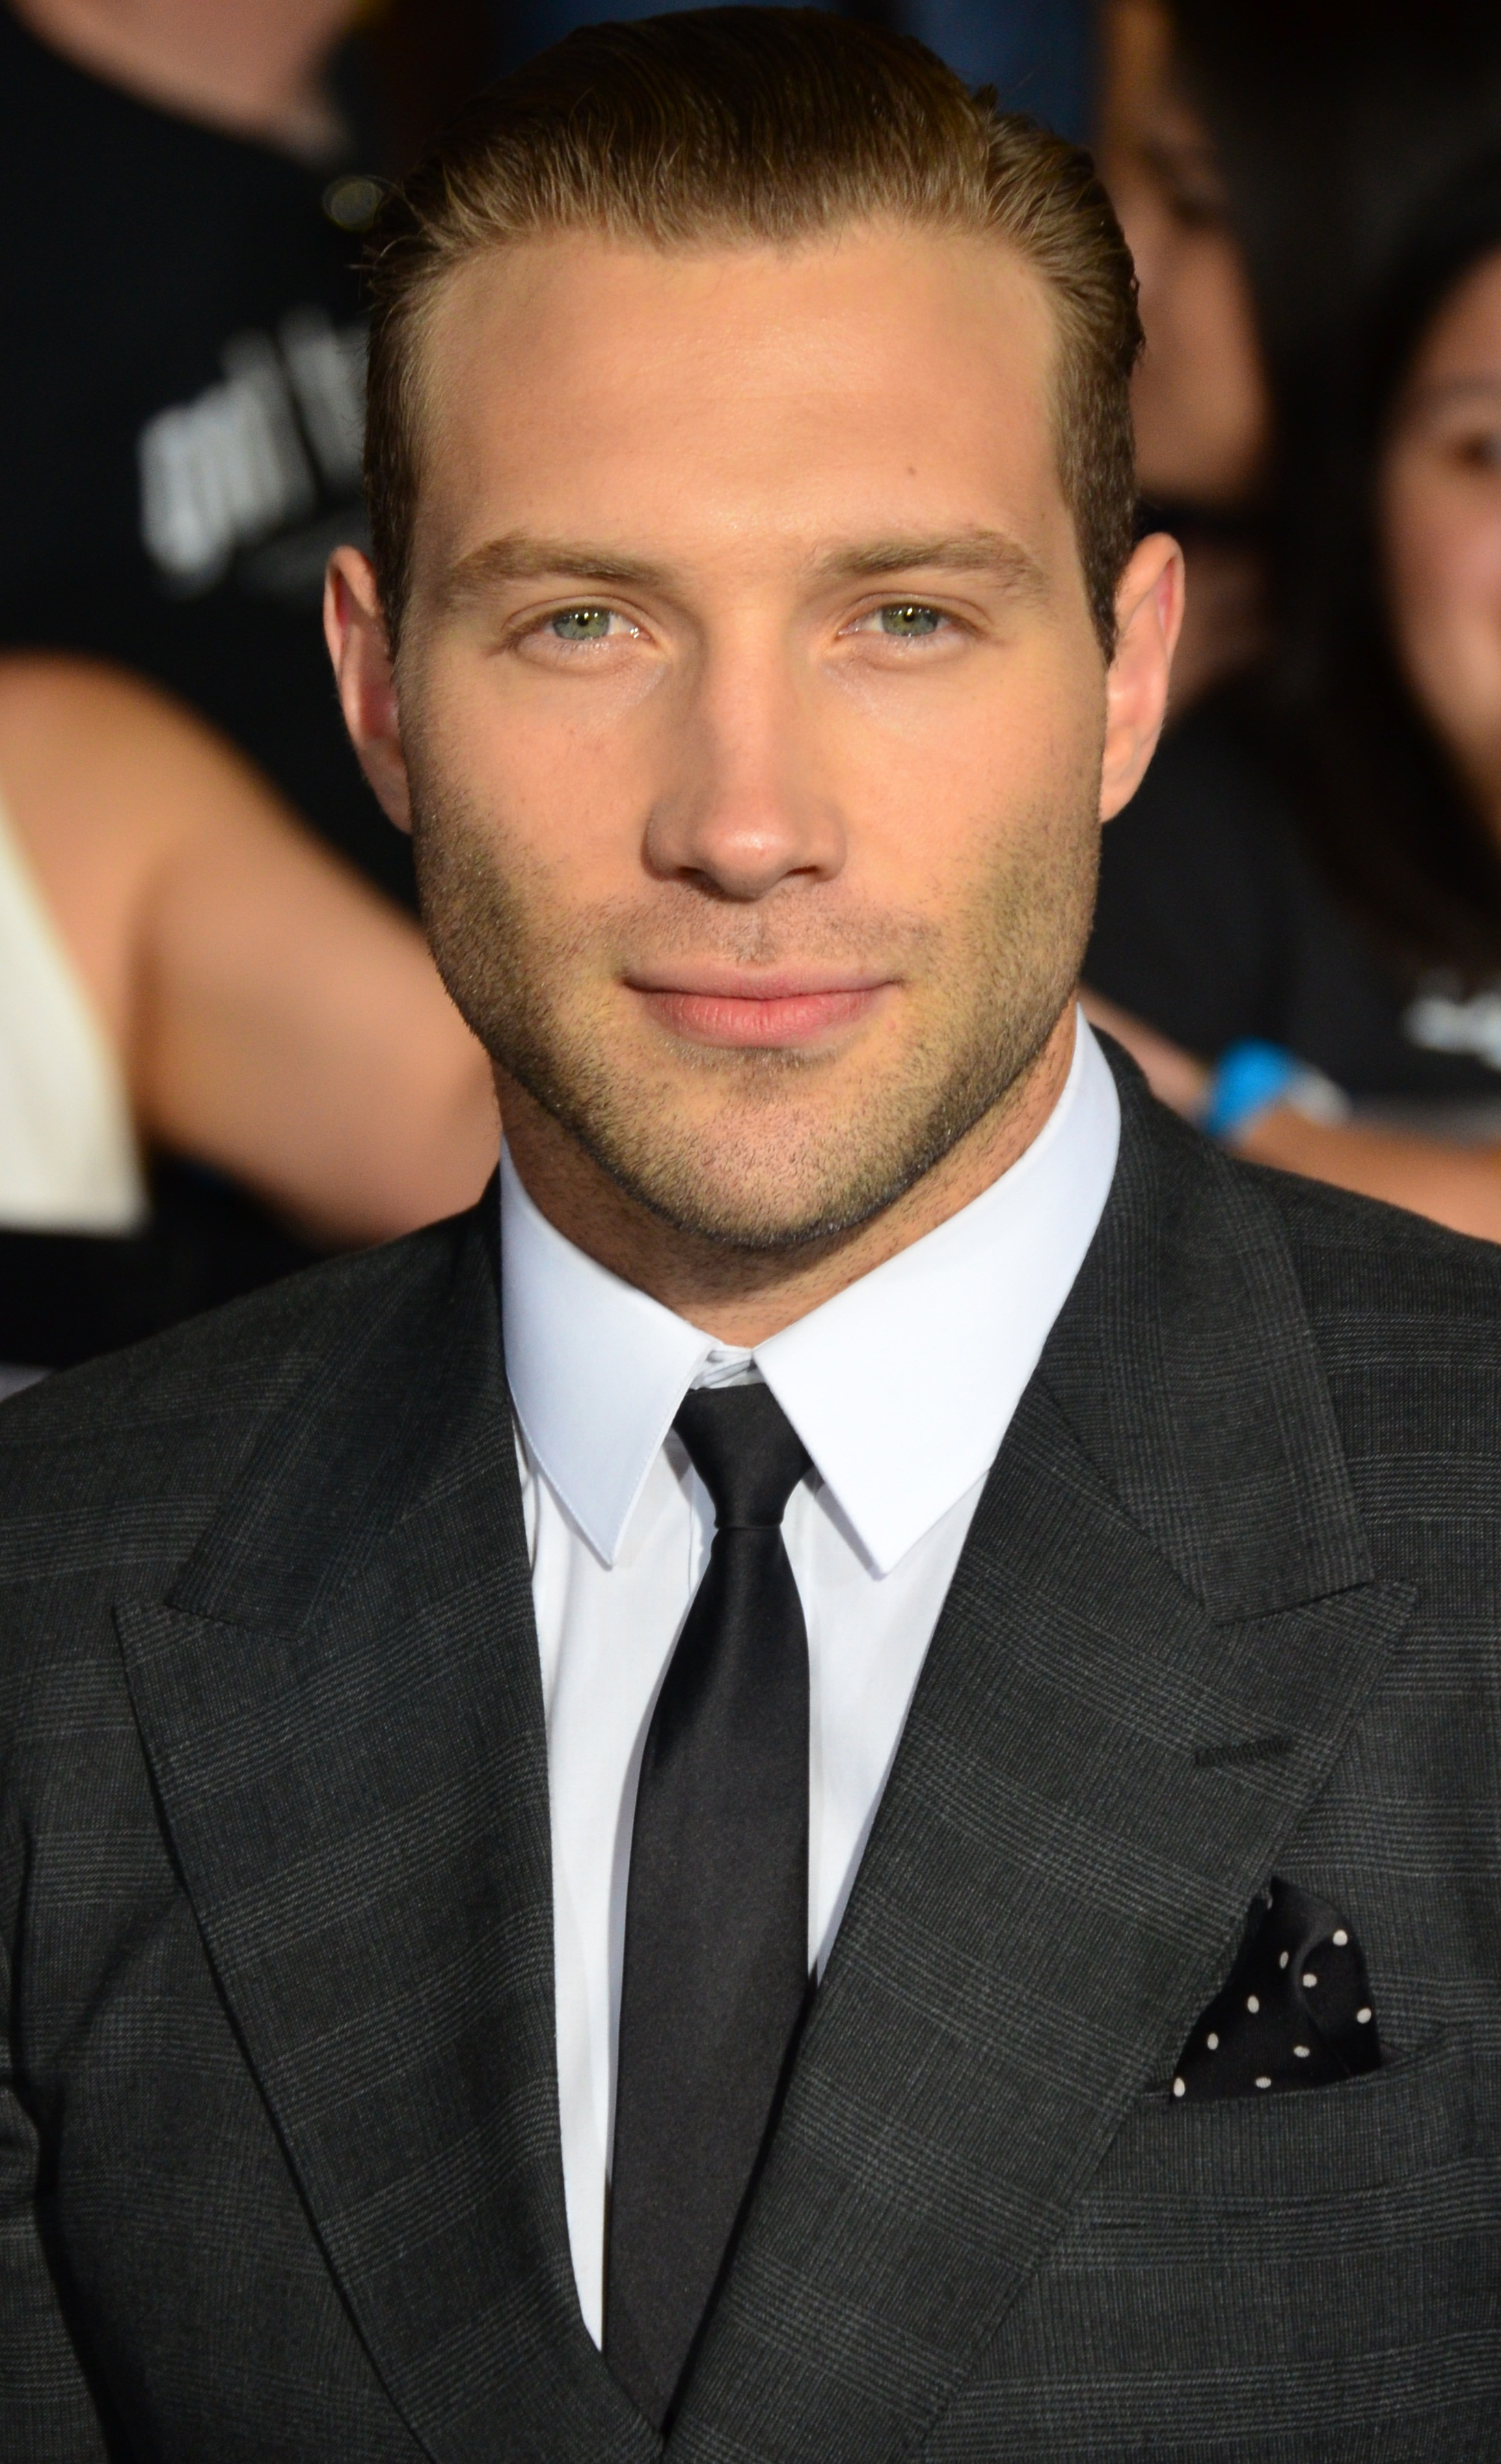 The 32-year old son of father Chris Courtney and mother Karen Courtney Jai Courtney in 2018 photo. Jai Courtney earned a  million dollar salary - leaving the net worth at 3 million in 2018